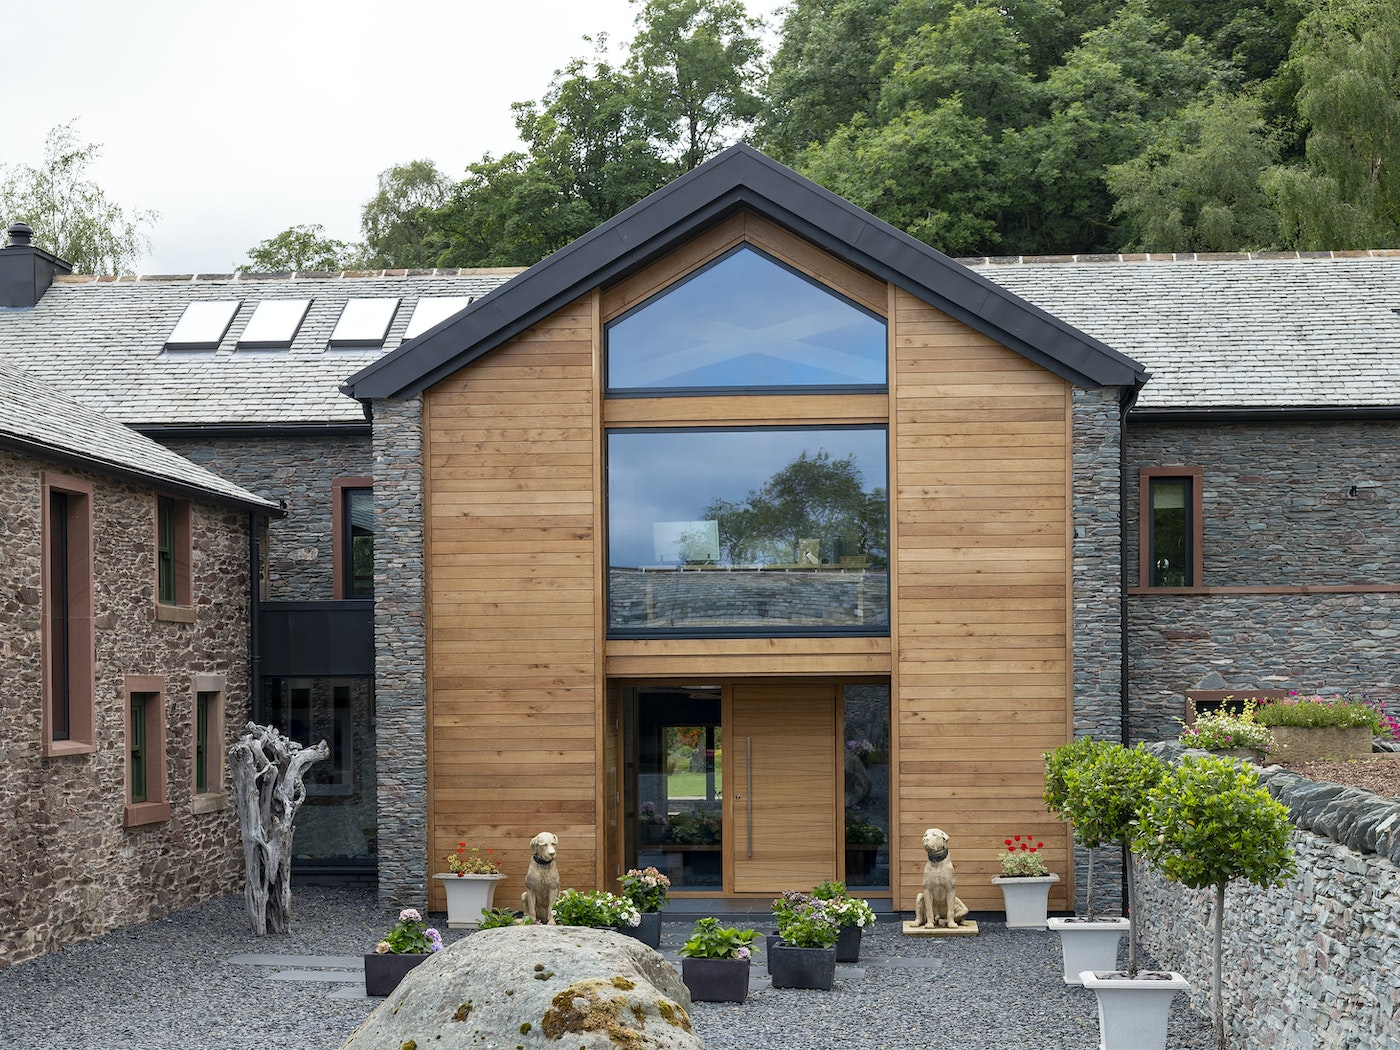 The front door and cladding are both European Oak - but the different design of the front door helps to create an individual identity